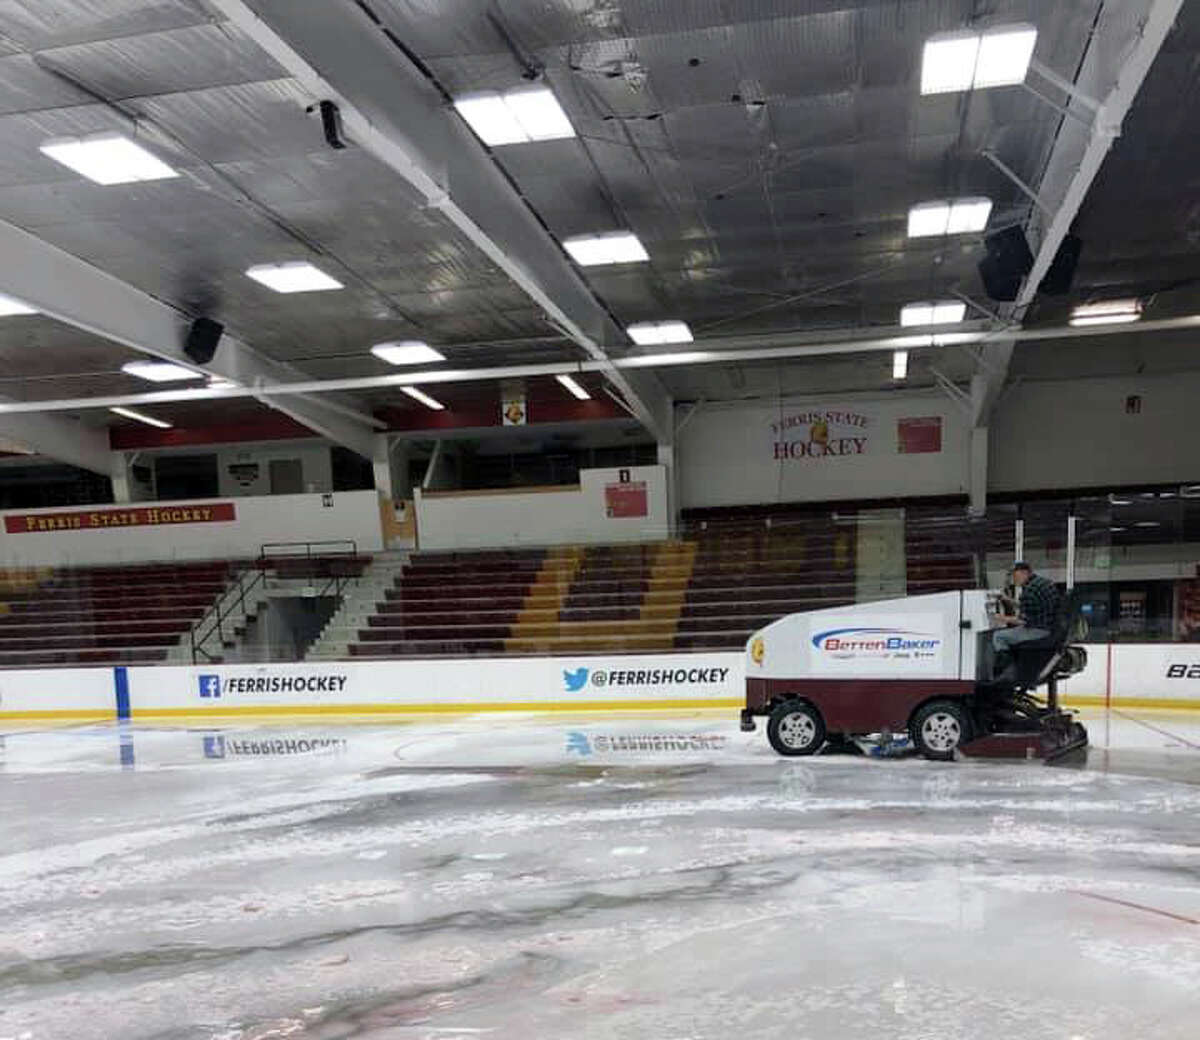 The Ewigleben Ice Arena remains relatively empty and void of public activity due to COVID-19 concerns, but next week it will receive a fresh sheet of ice for whenever action is allowed to return.